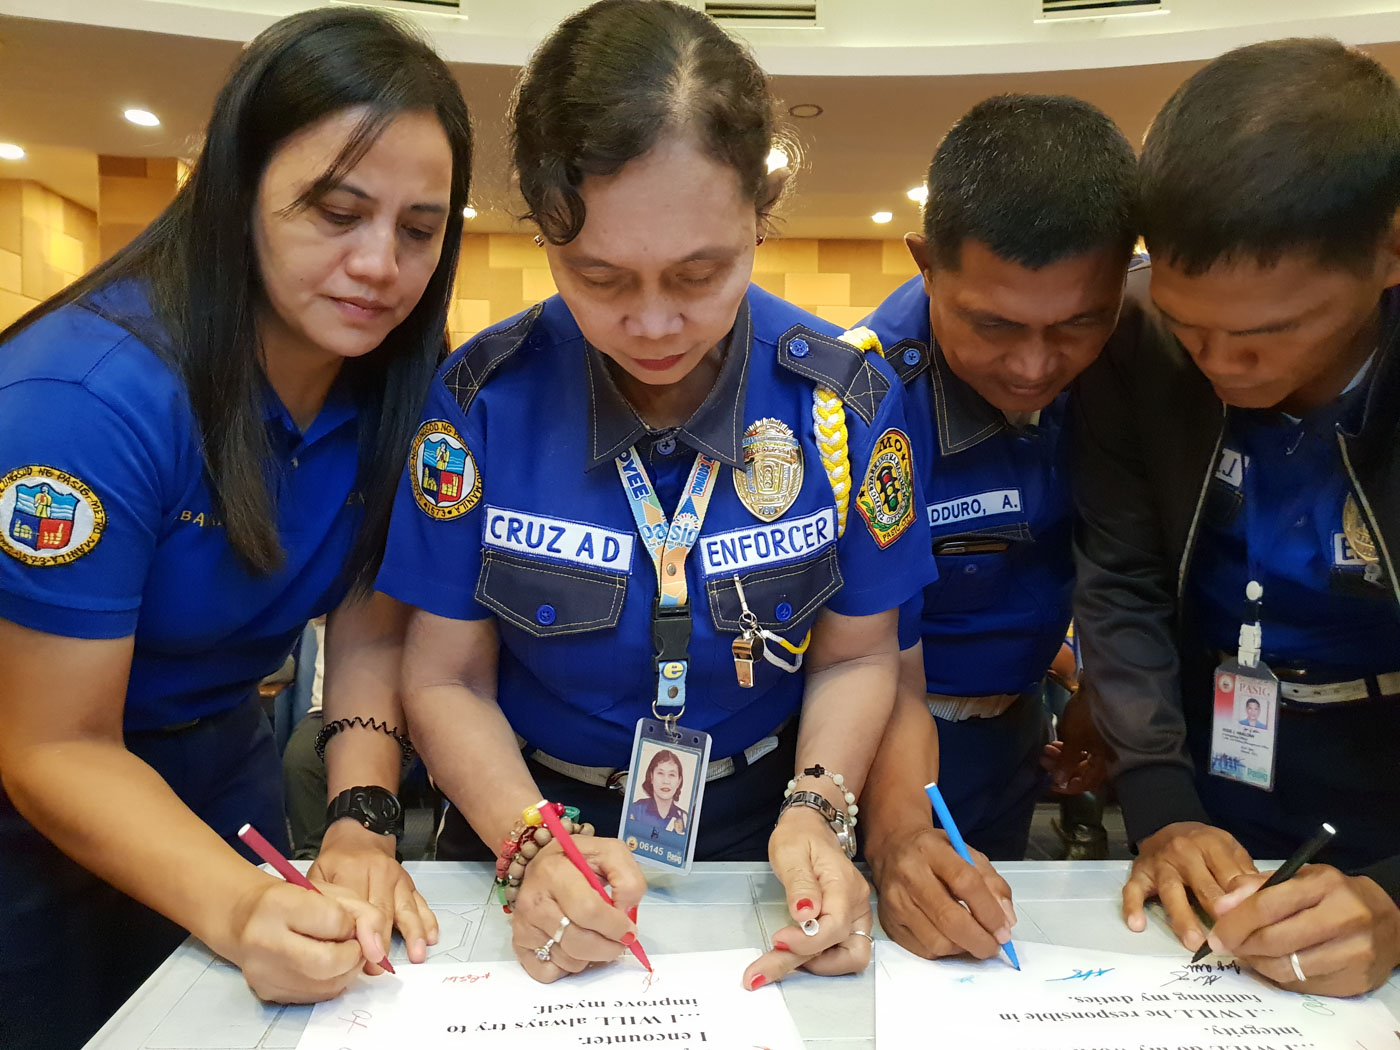 COMMITMENT. Pasig City's traffic enforcers vow to be professional at their jobs, spurred by the possibility of getting permanent contracts. Photo by JC Gotinga/Rappler